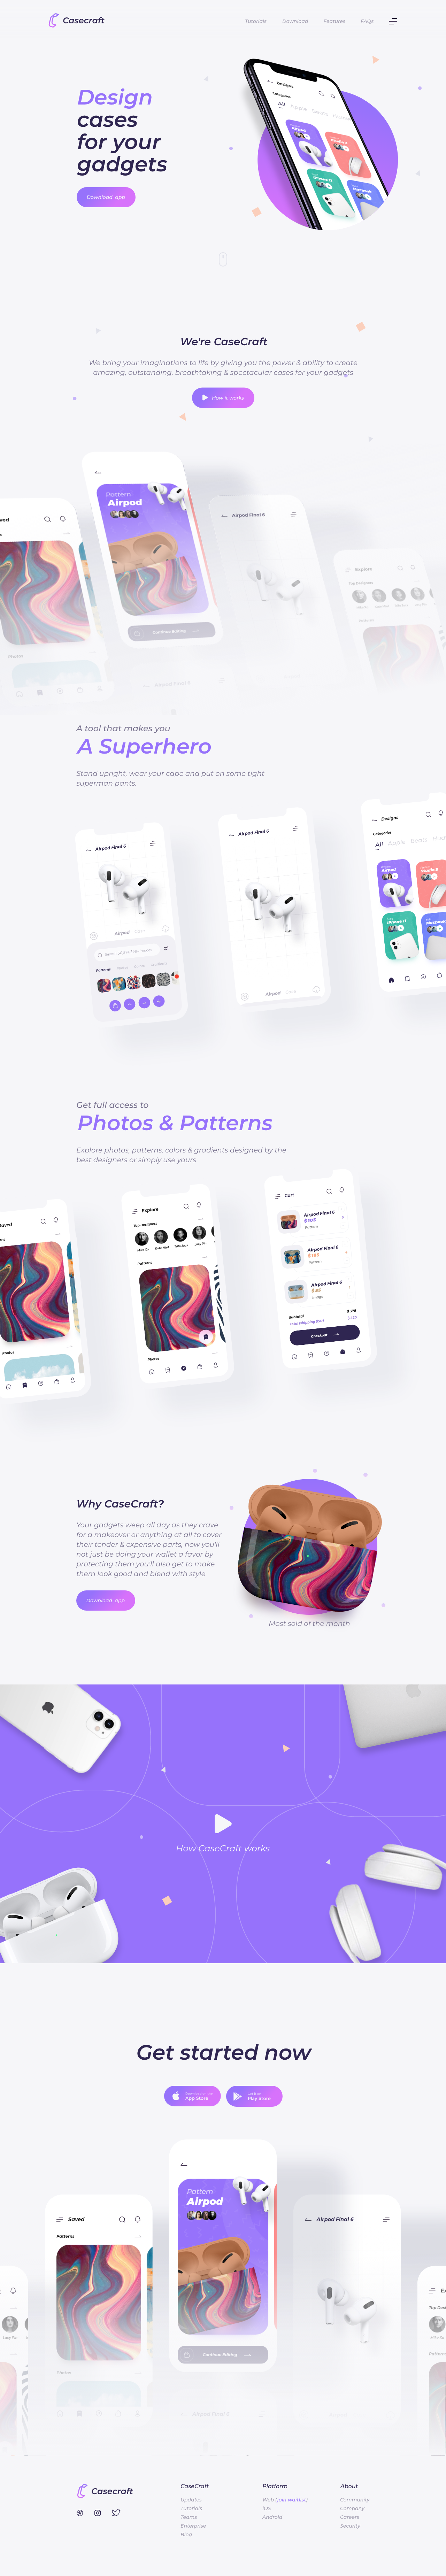 Case Craft Landing Kit - Minimal and clean ui kit design, 6+ screens for you to get started.